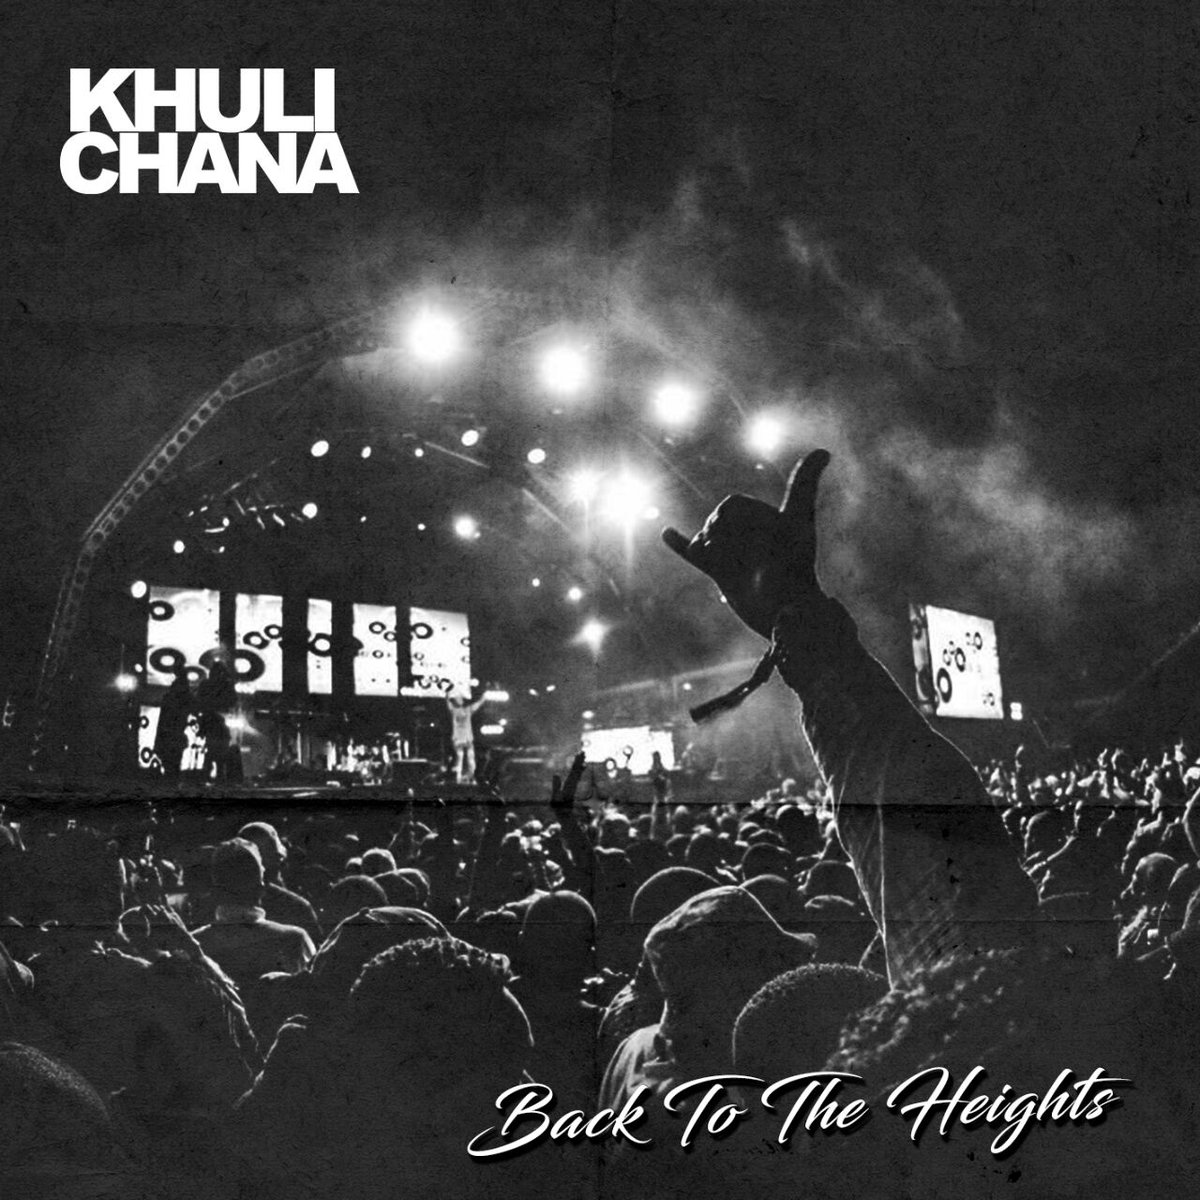 Download Khuli Chana's Song 'Back to the Heights' (MP3)